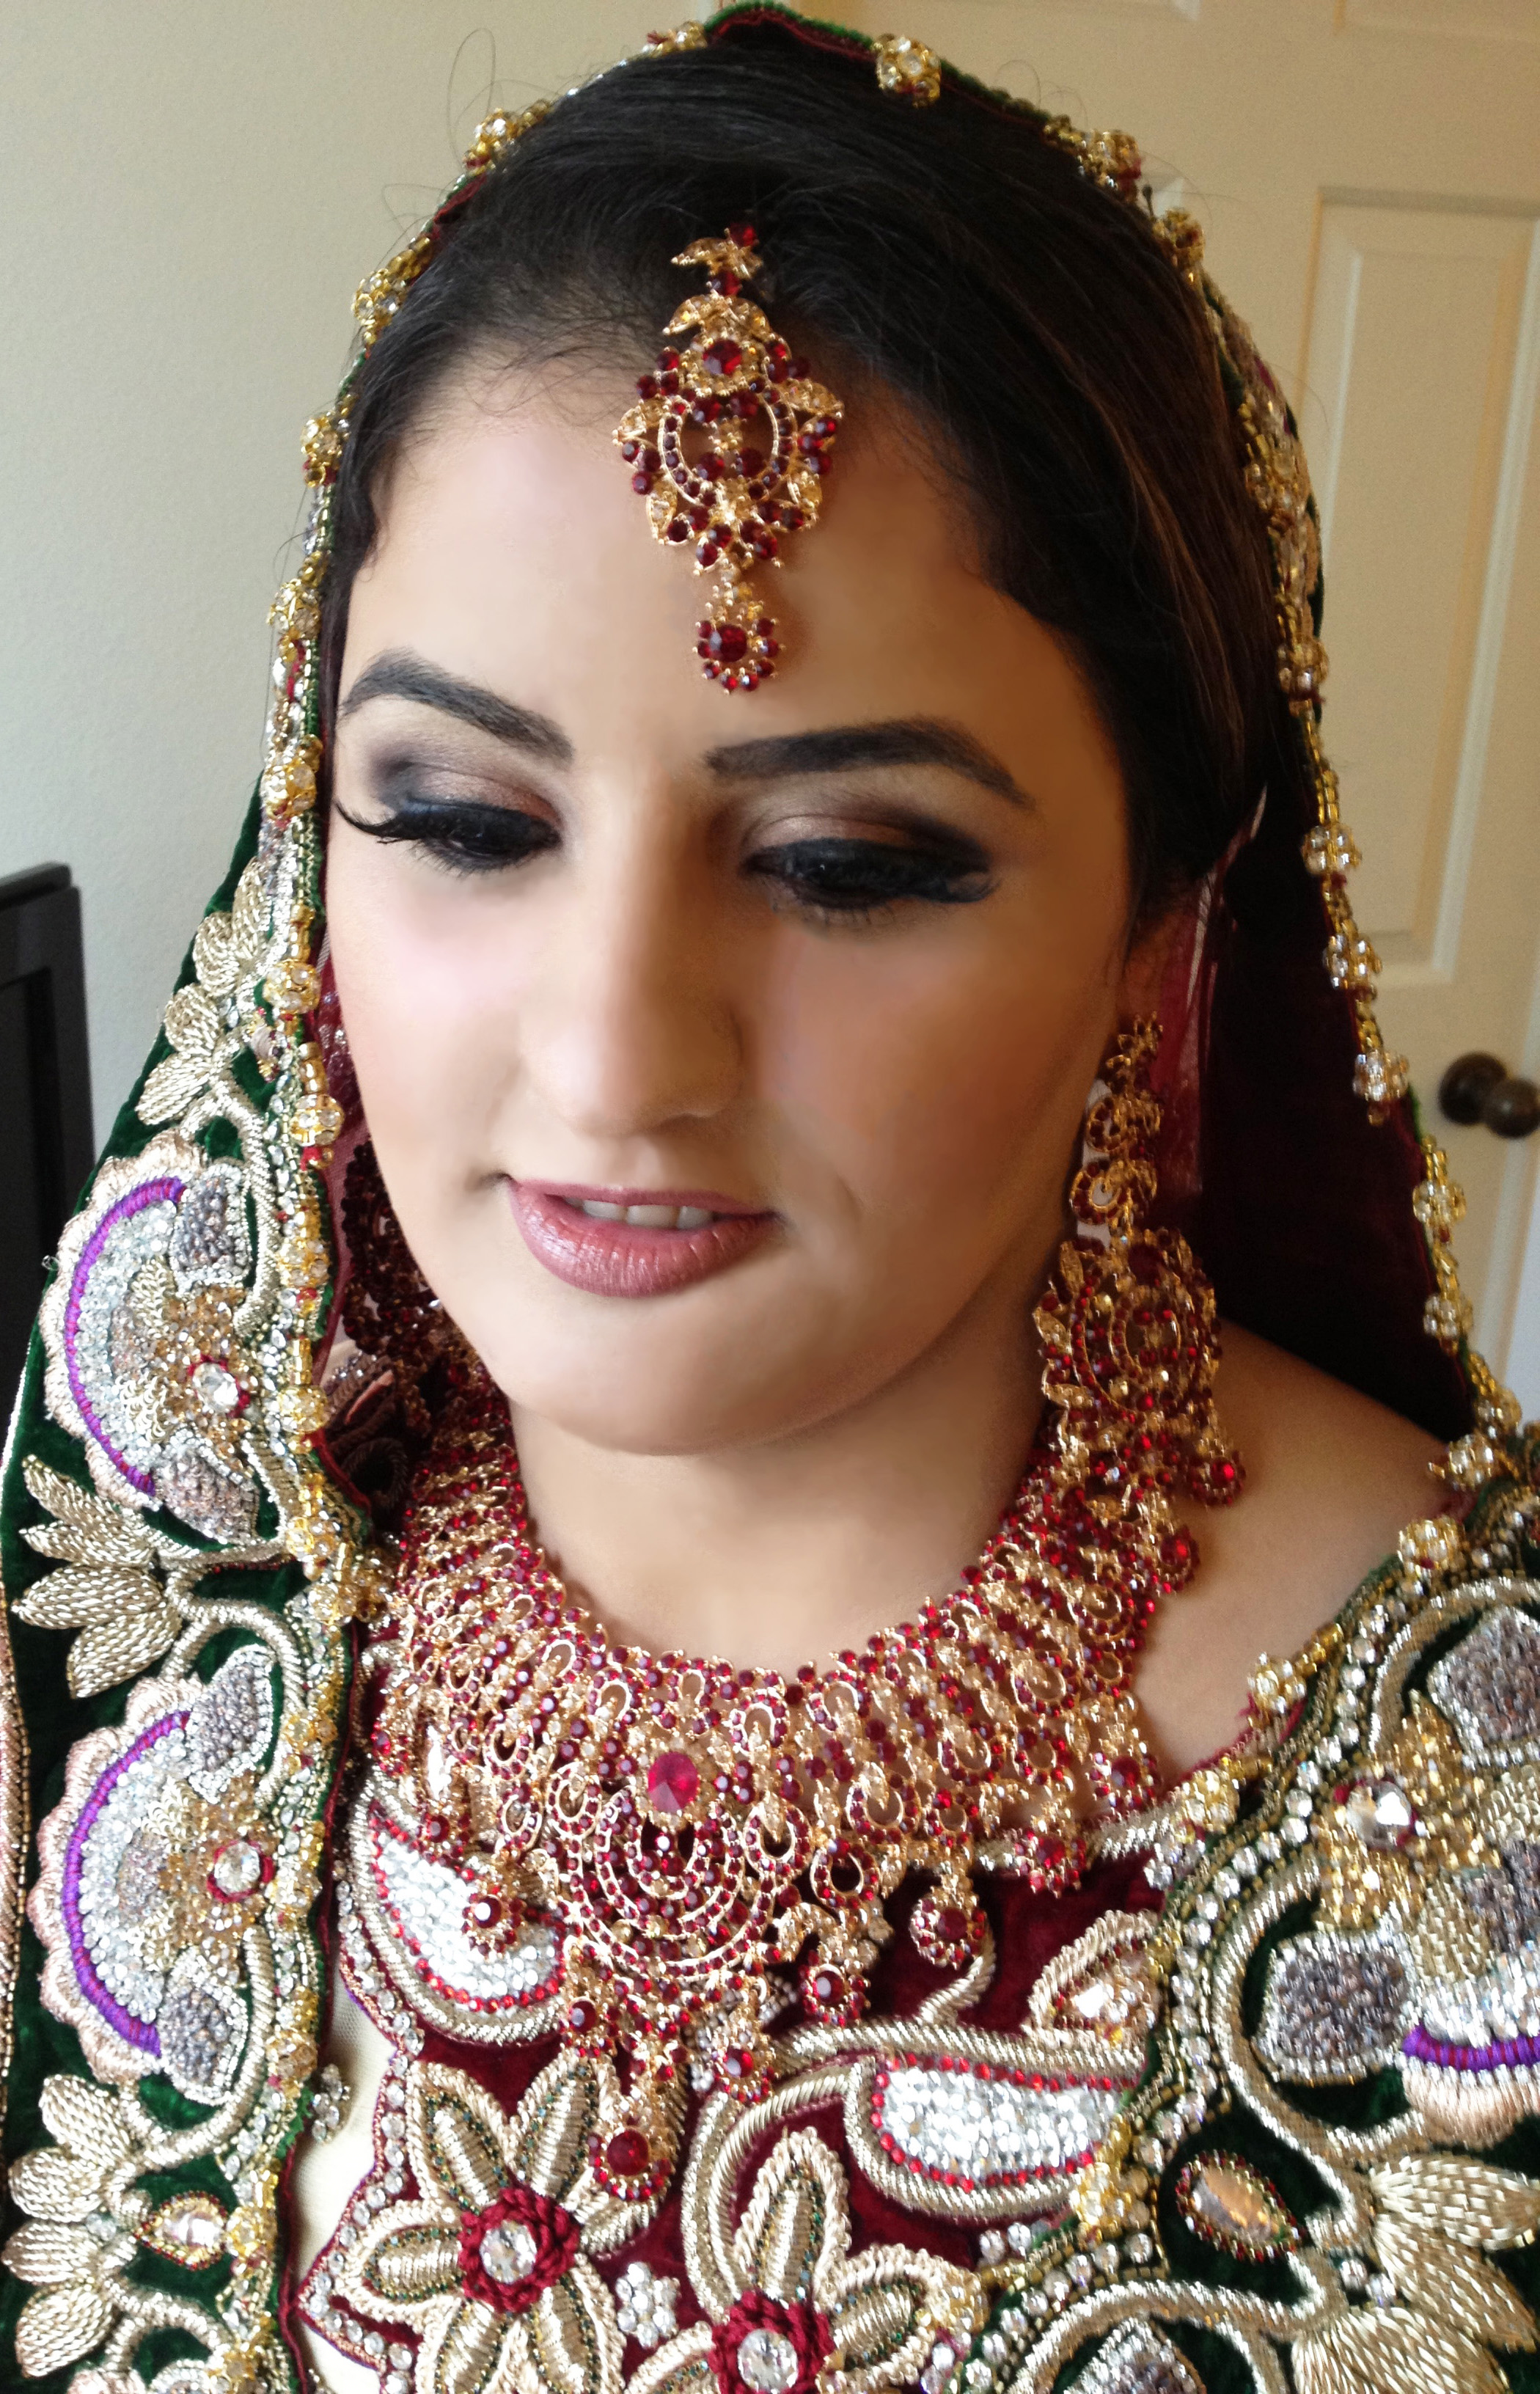 noor-s-bridal-hair-makeup